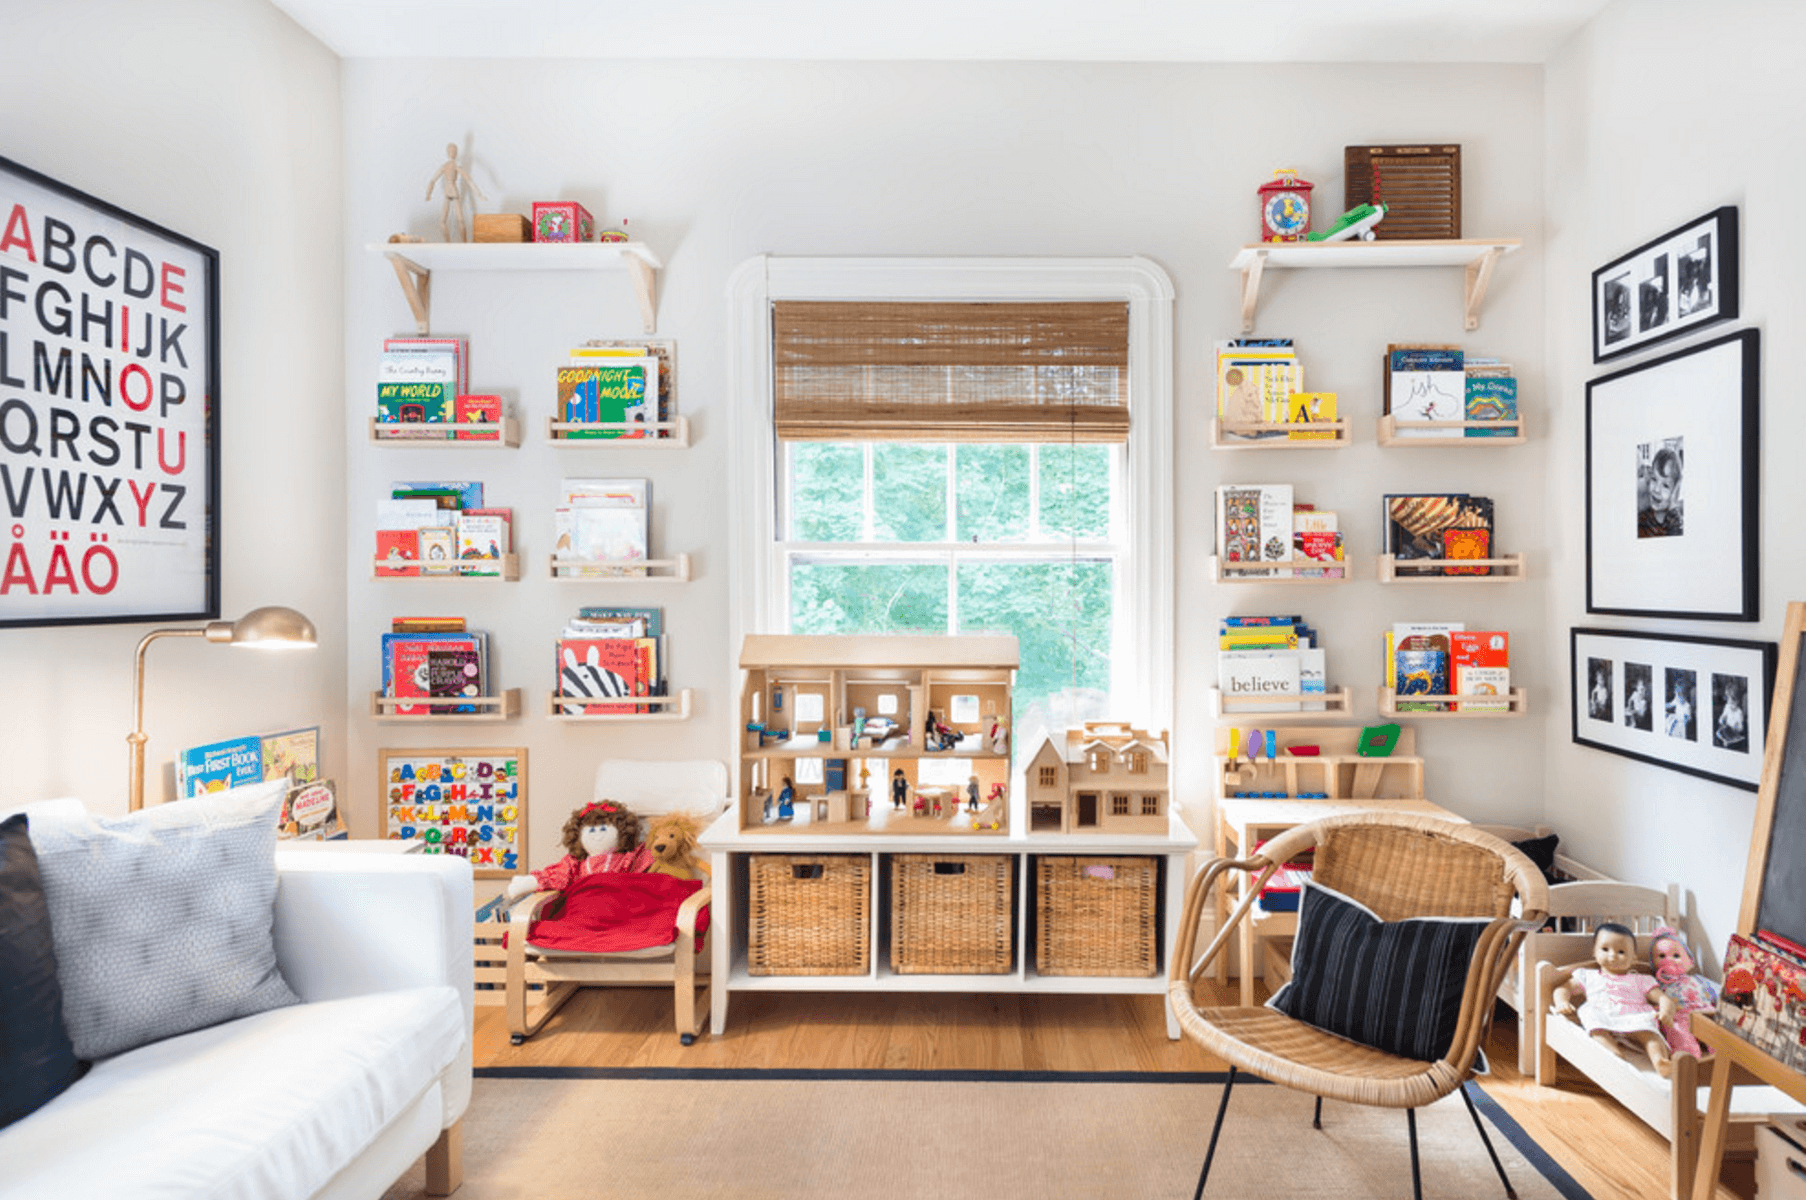 Small Space Living Sharing A Clean Home With Children